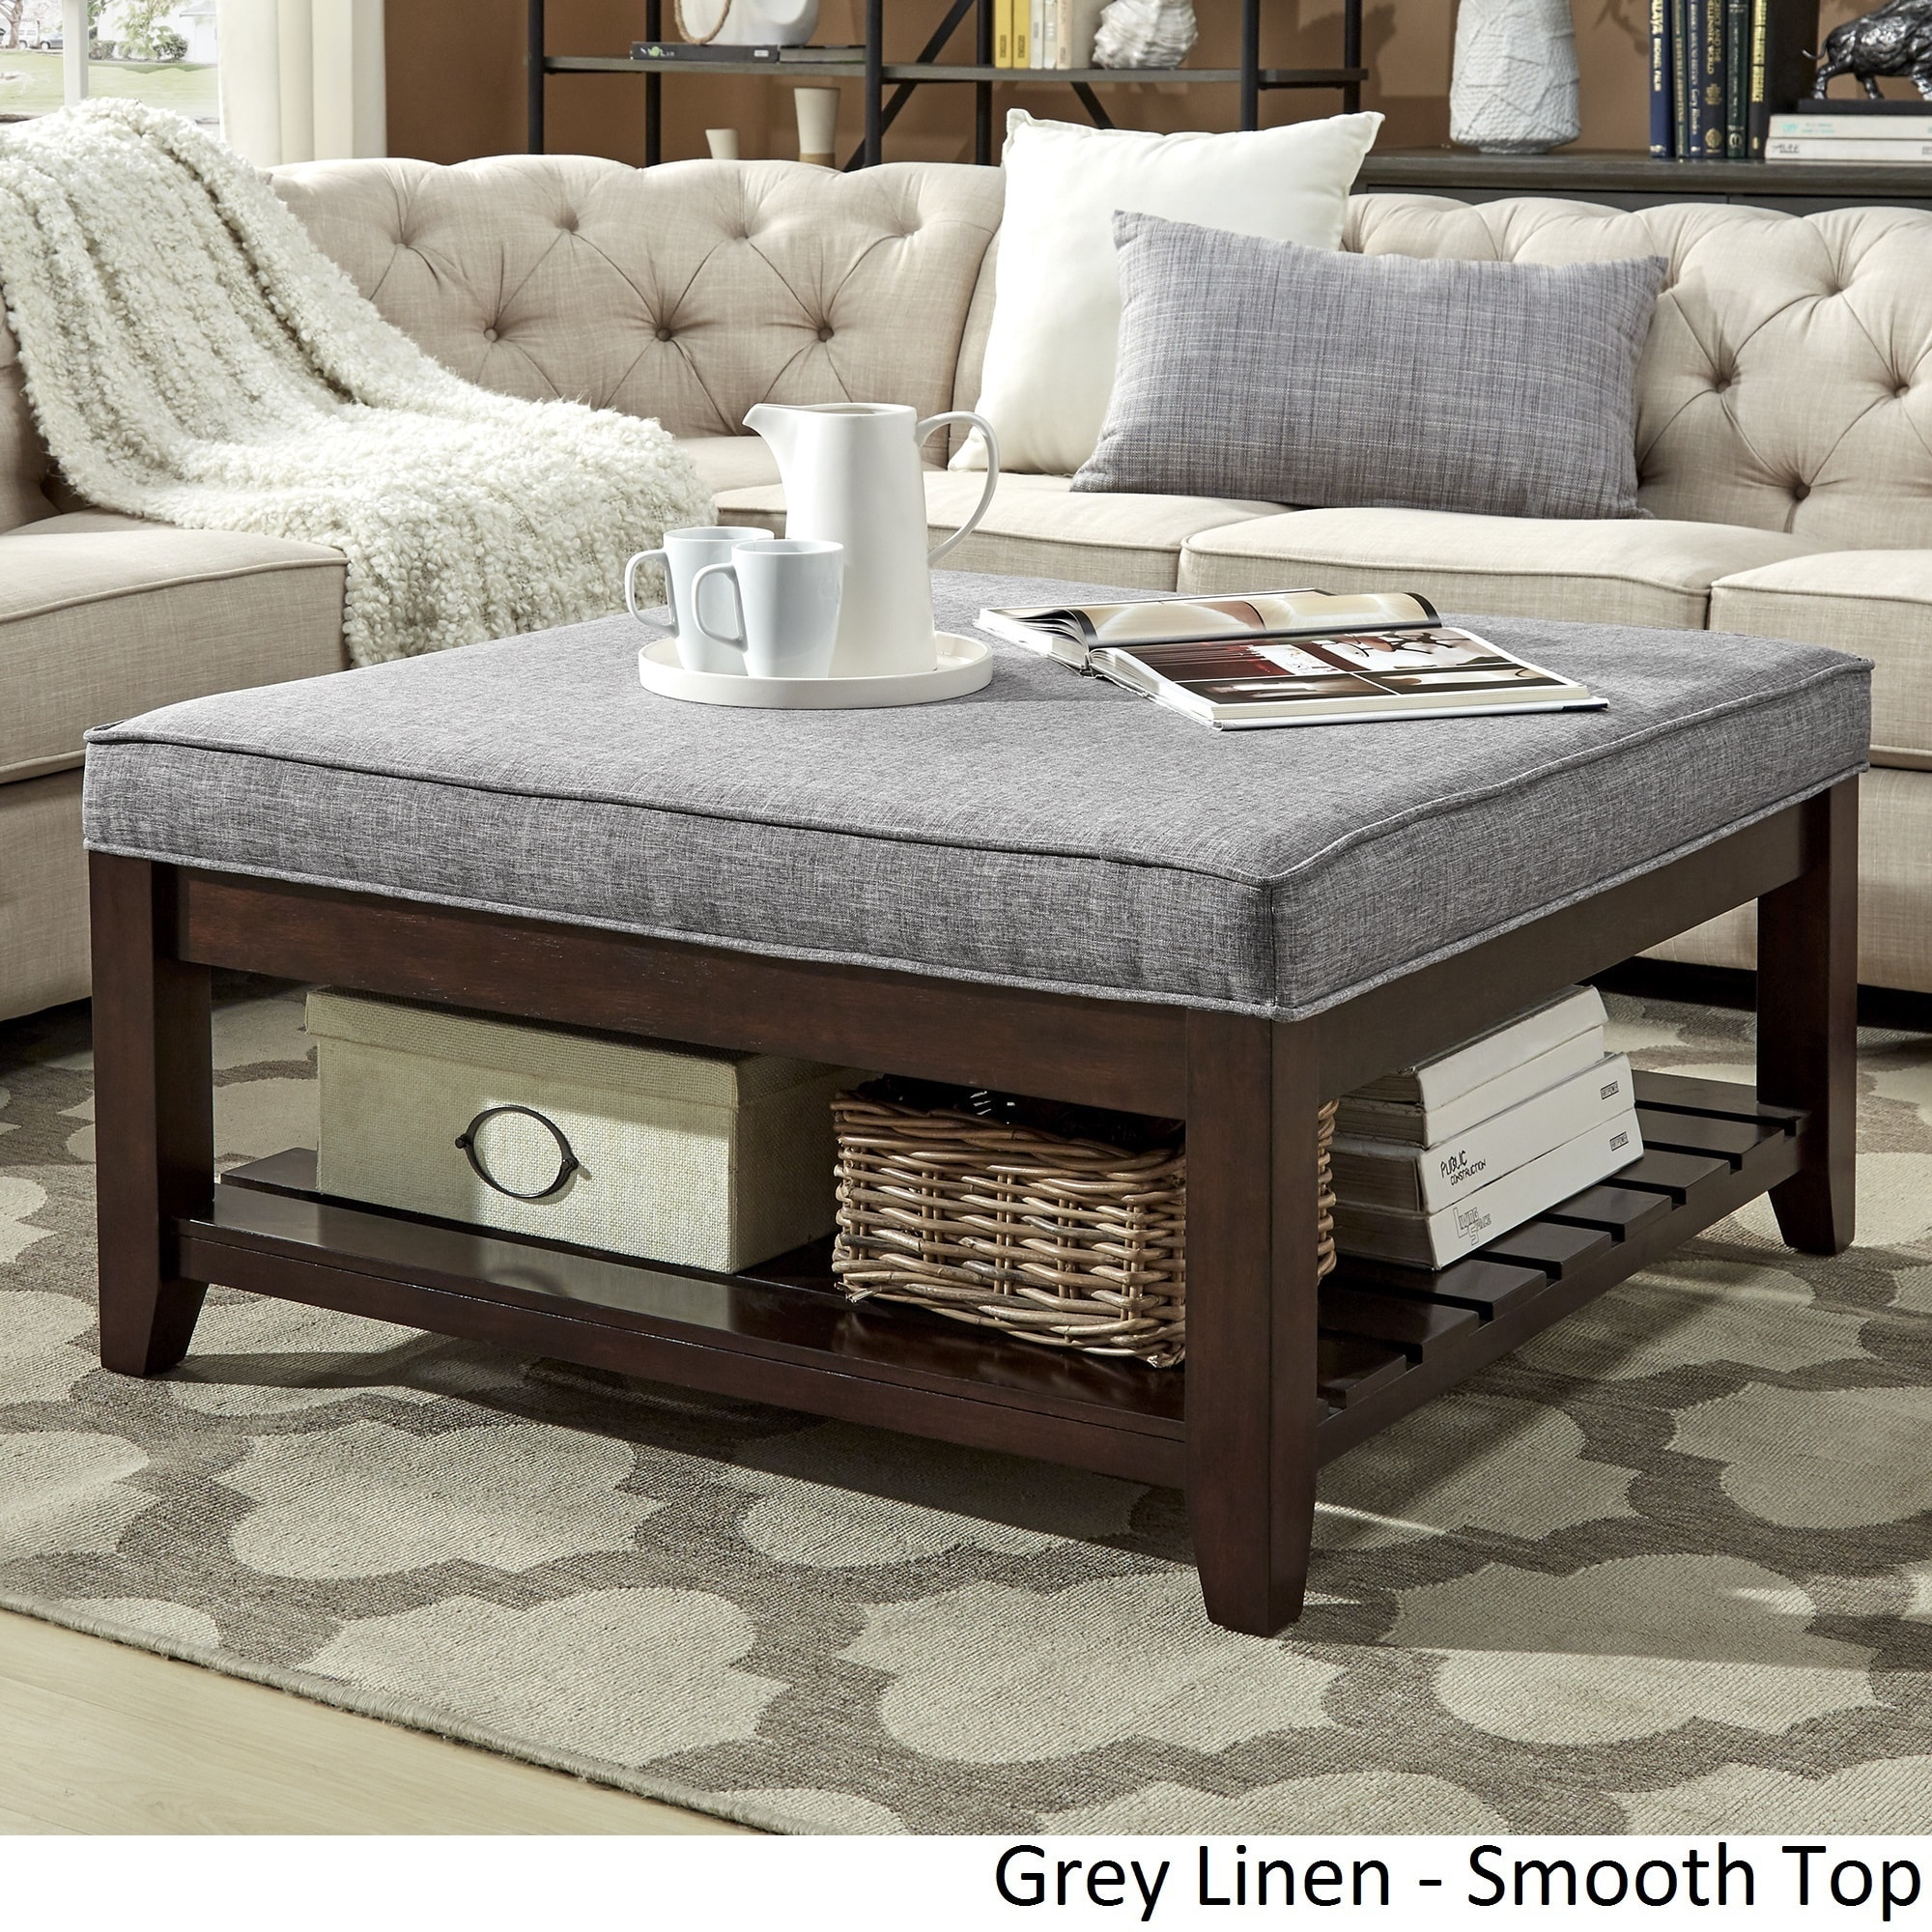 Lennon Espresso Planked Storage Ottoman Coffee Table By Inspire Q Clic Free Shipping Today 20177484